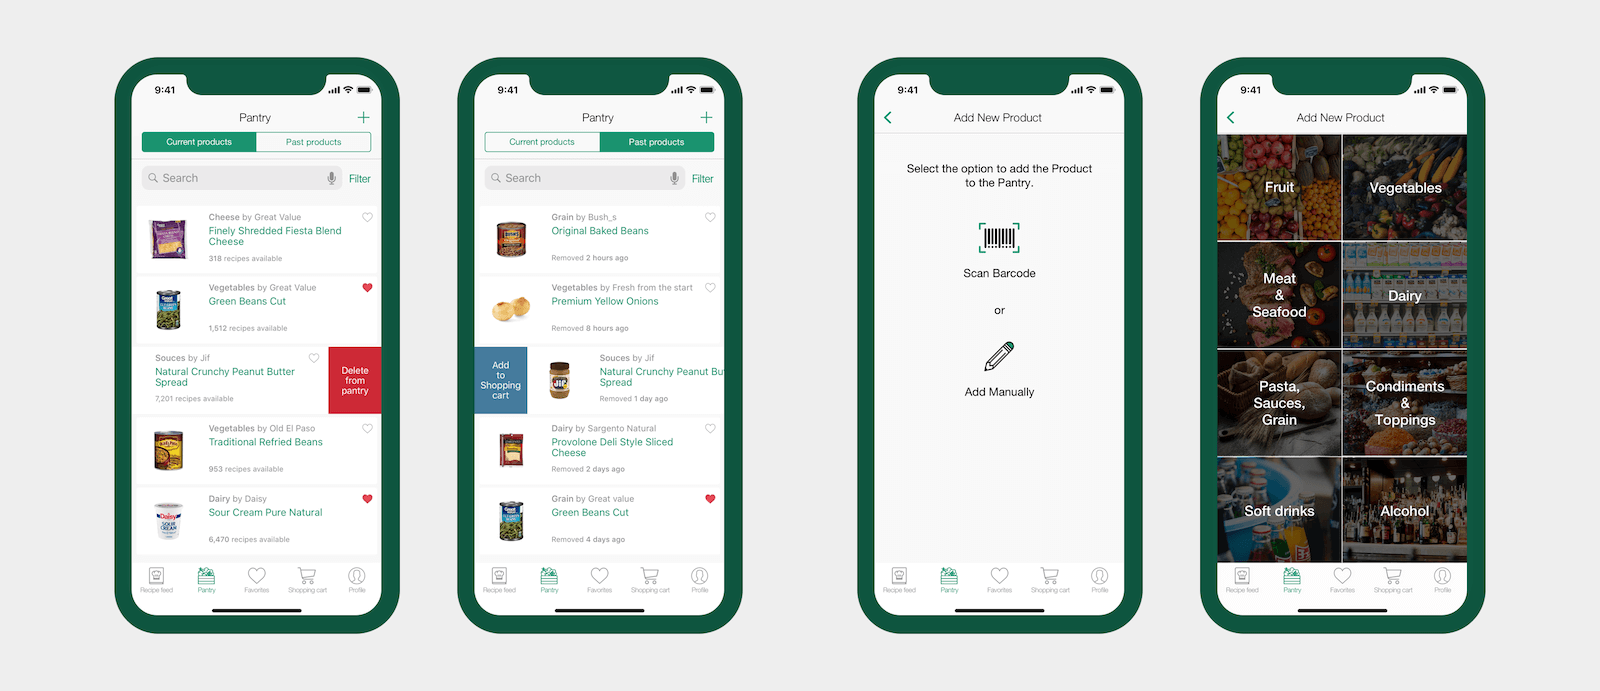 Cooklist - Pantry and Add new product screens